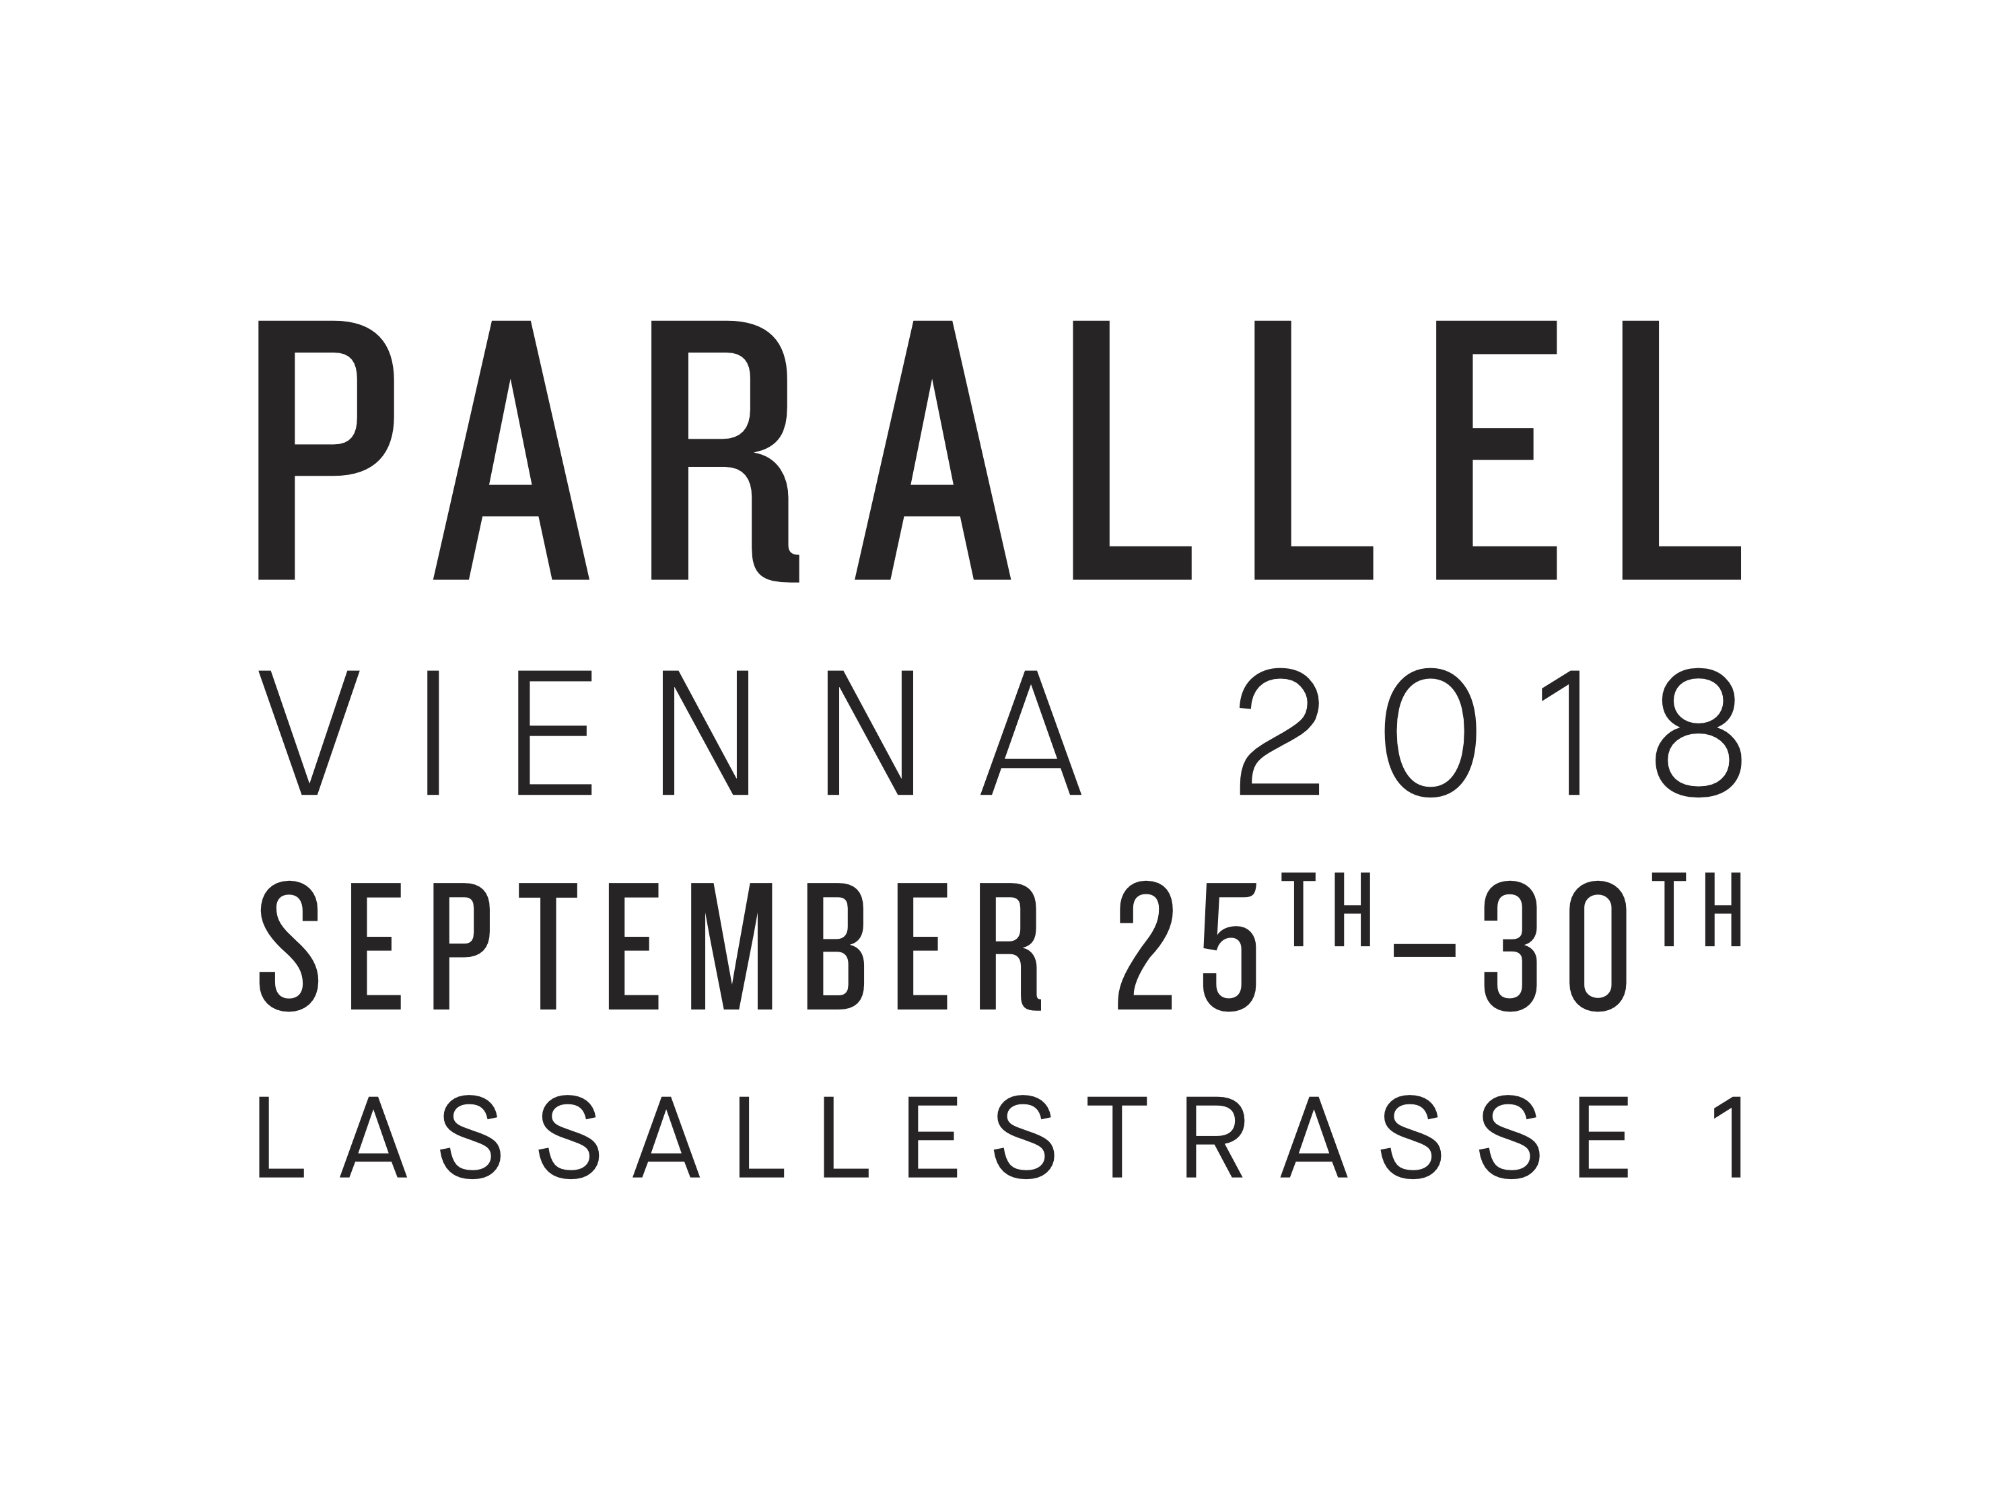 Parallel_Vienna Blog.jpg